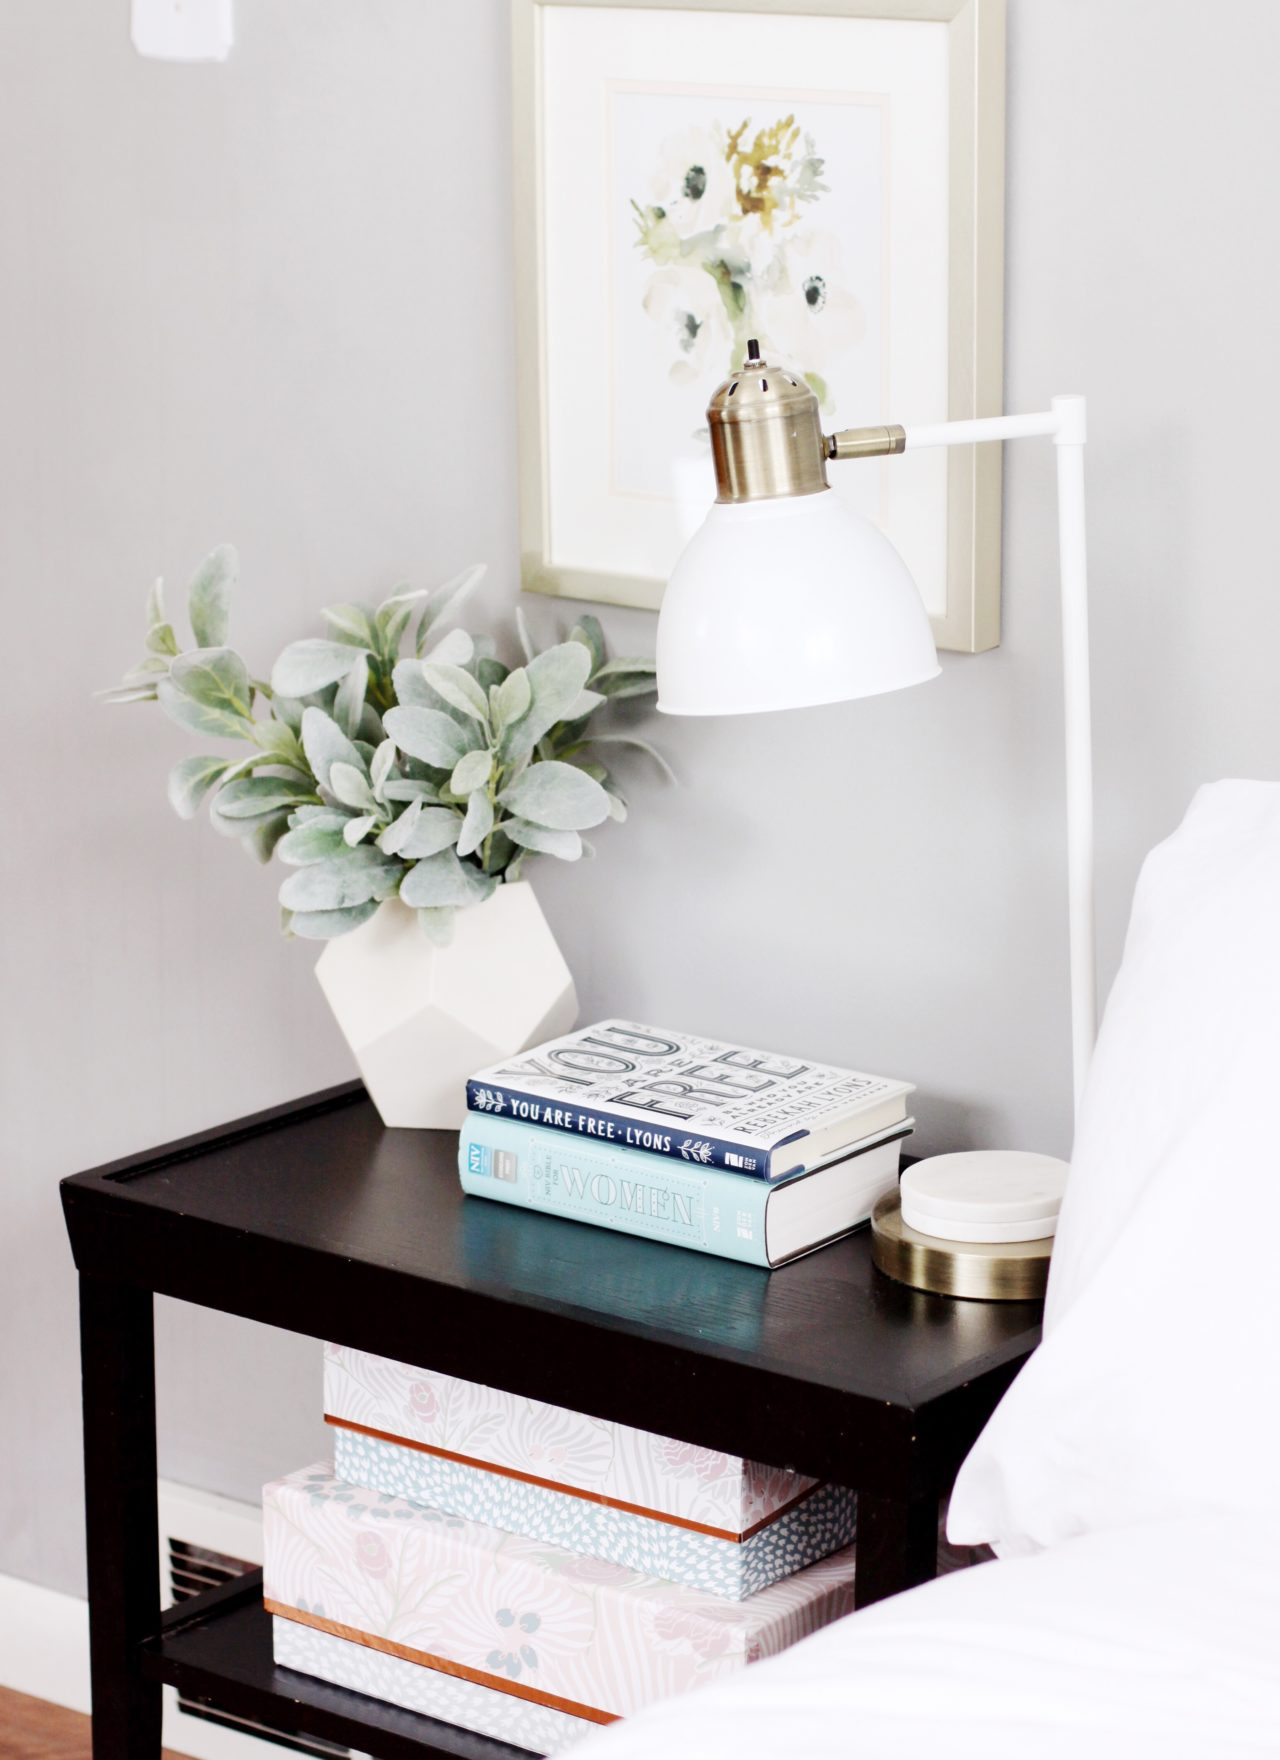 Styling a Nightstand // 5 Elements